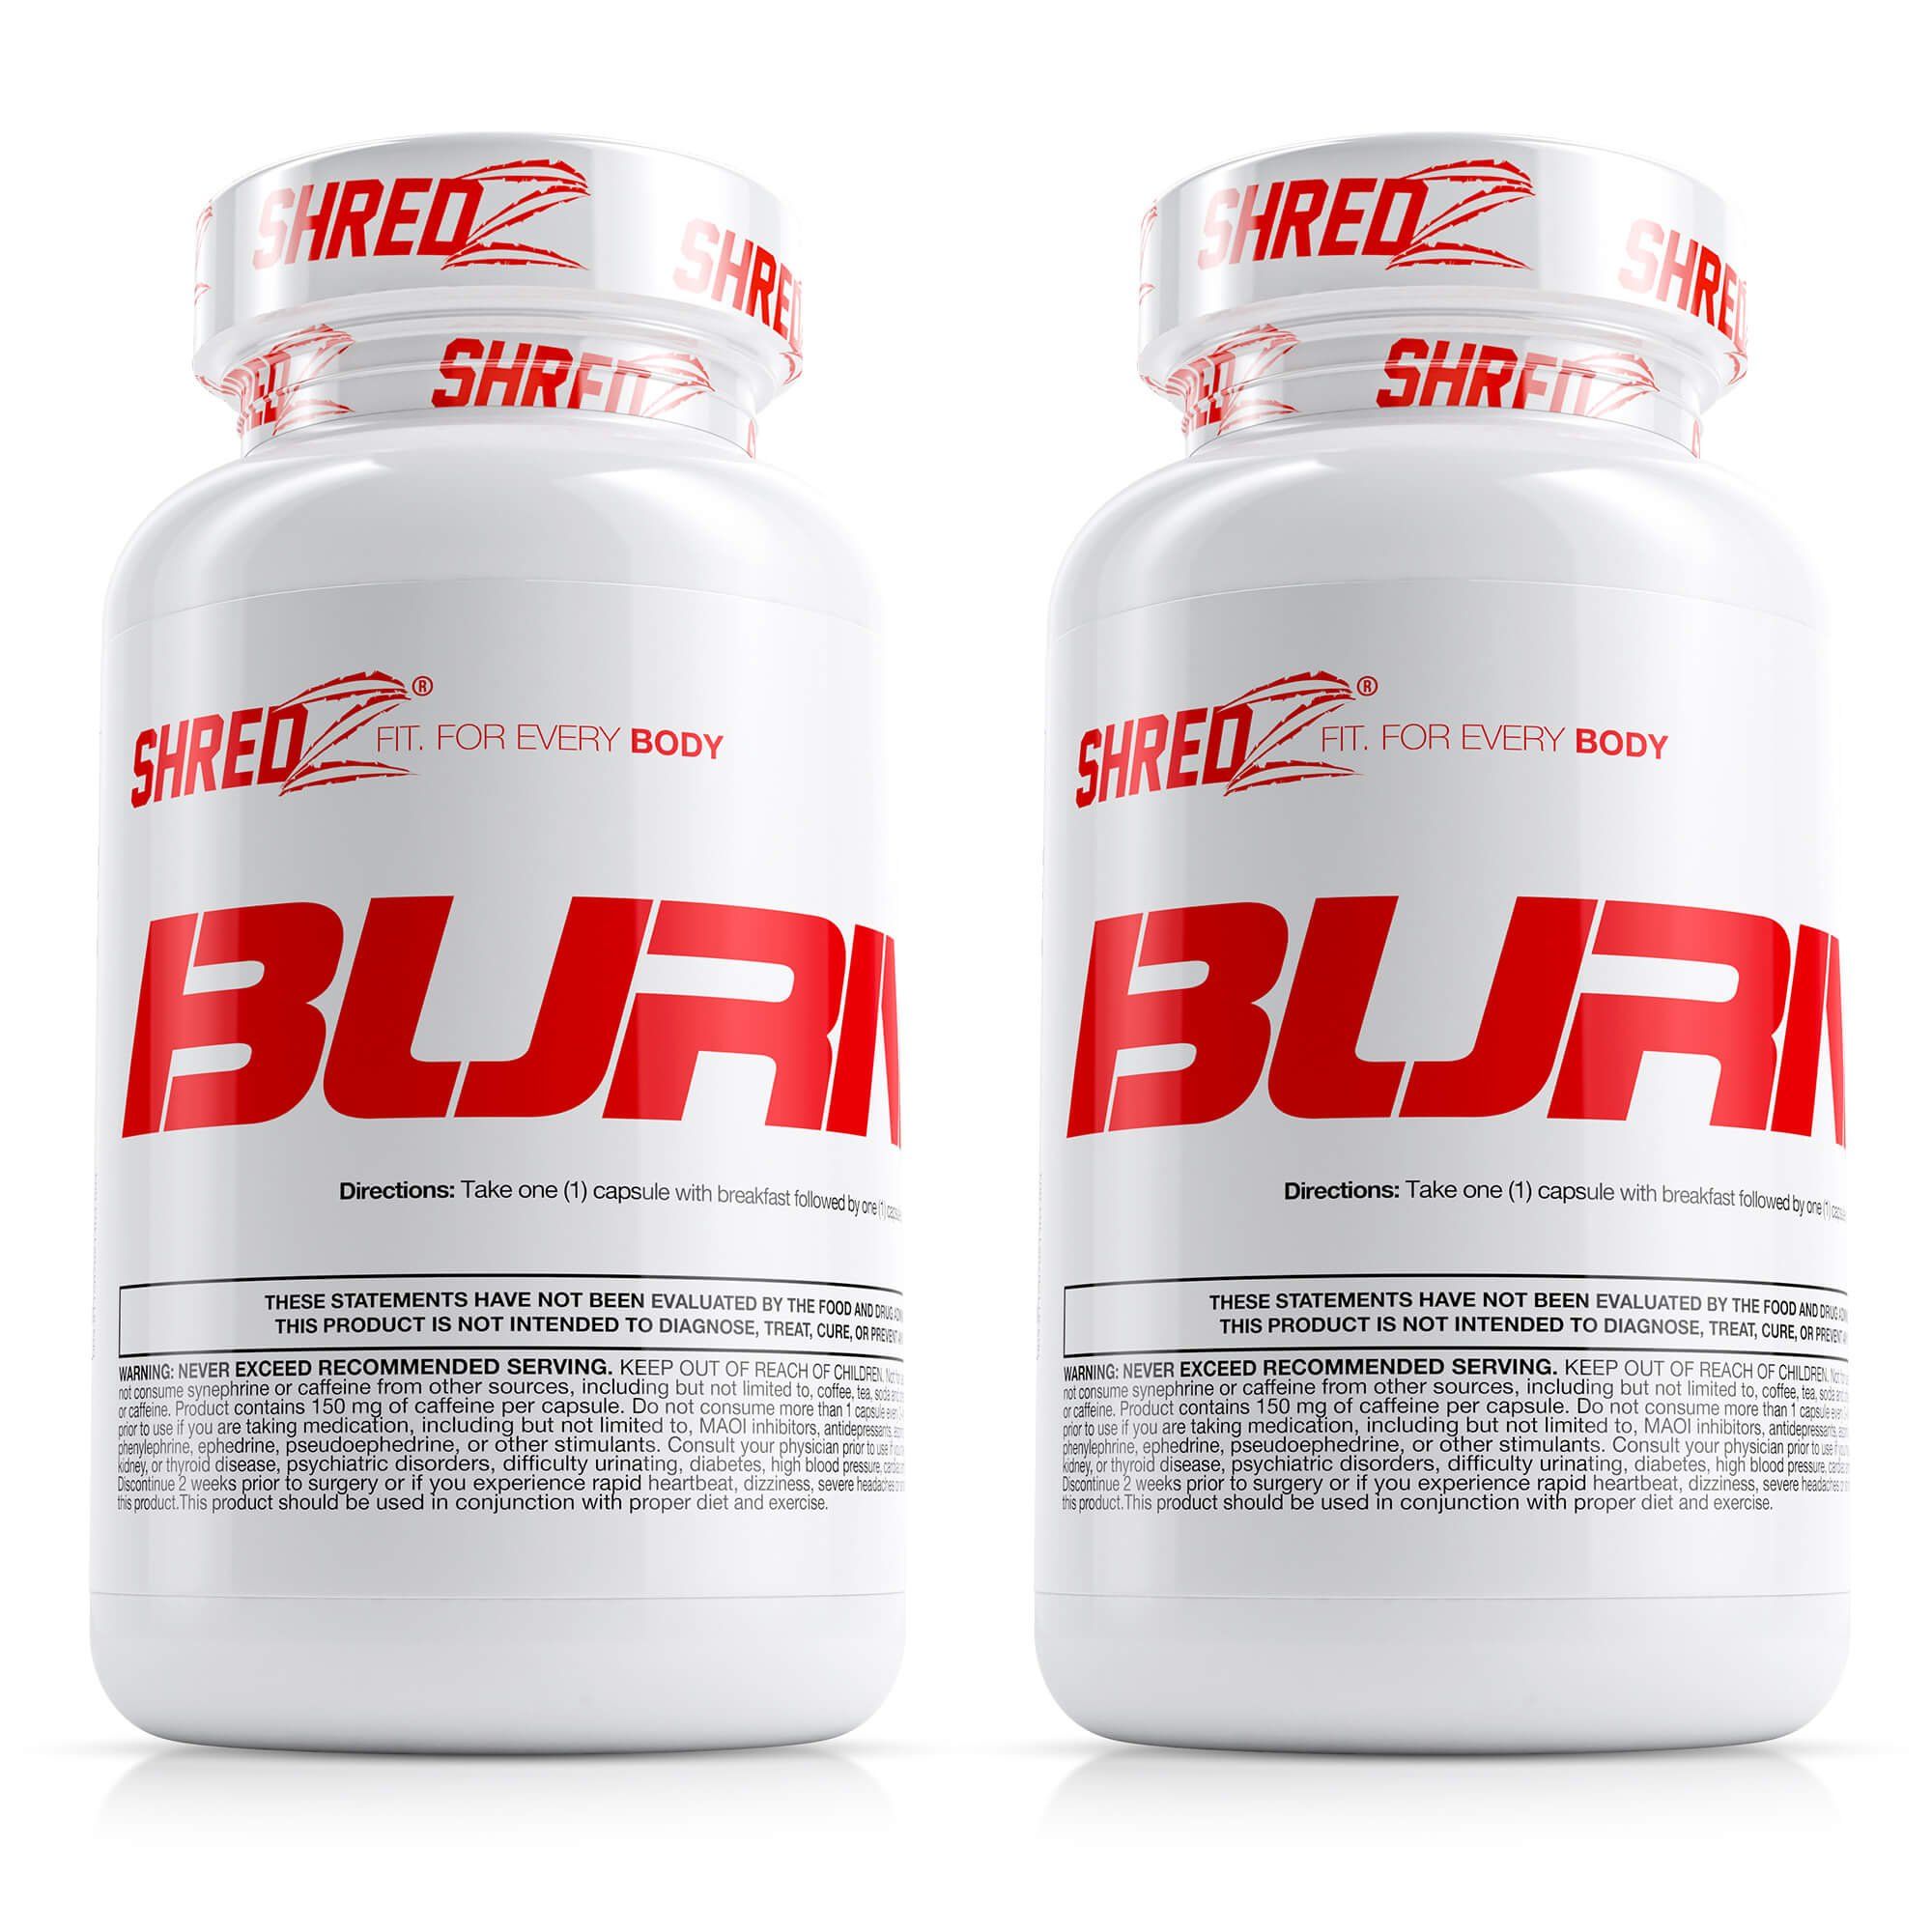 SHREDZ® Burner for Men (2 Months) – Lose Weight, Increase Energy, Best Way to Shed Pounds! 60 capsules